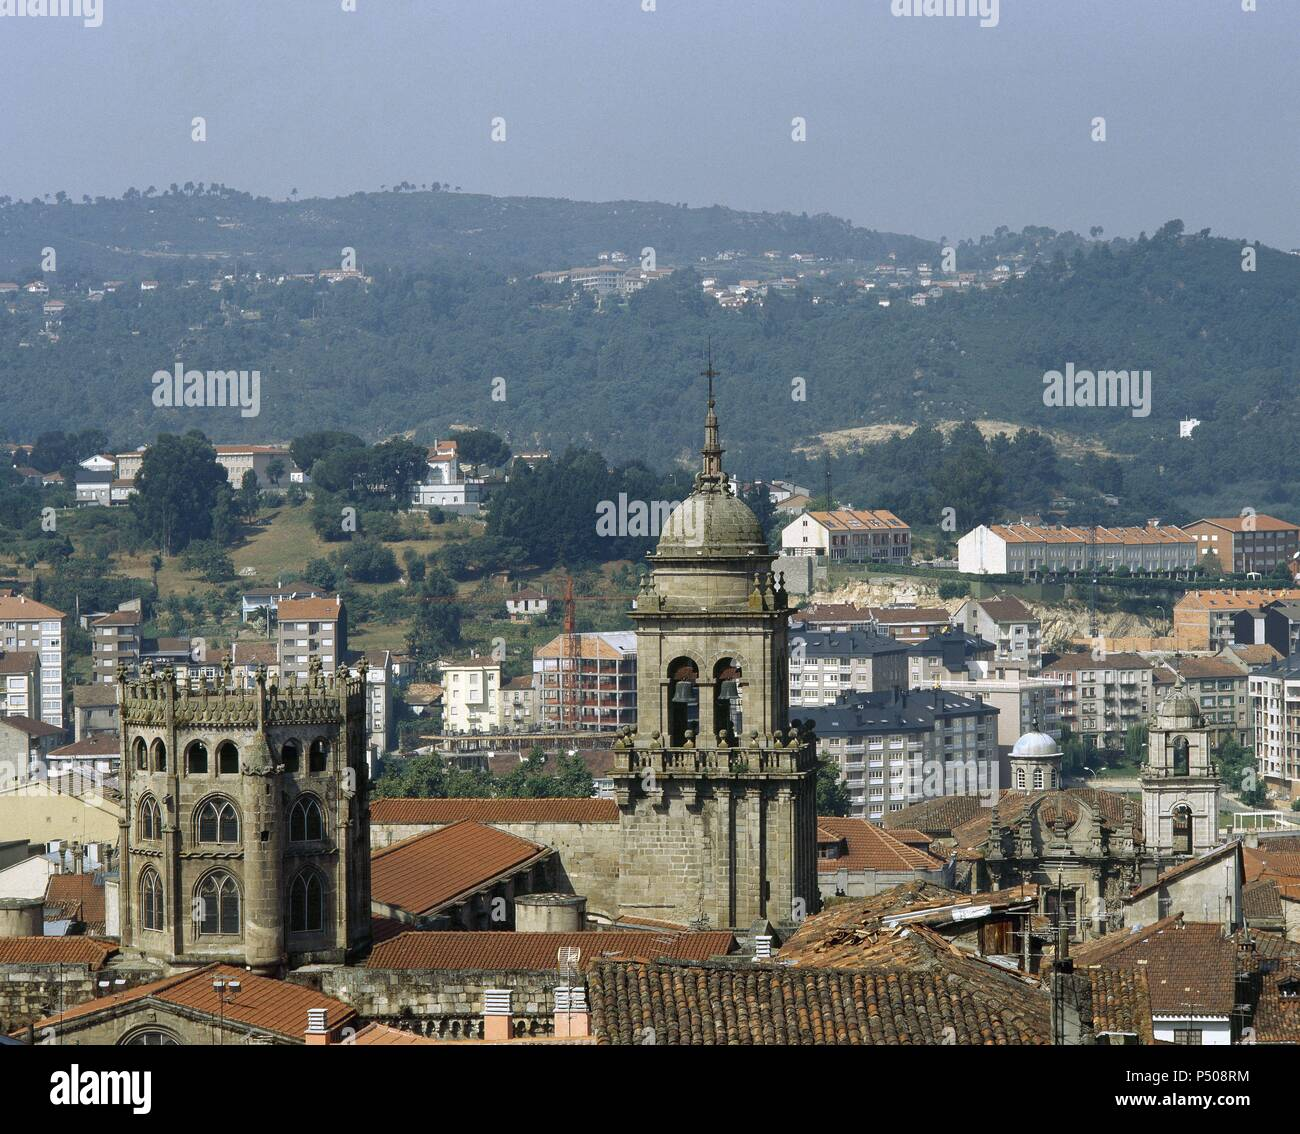 Spain. Galicia. Orense. Dome (15th century) and campanile of the cathedral from the St. Francis convent. Stock Photo